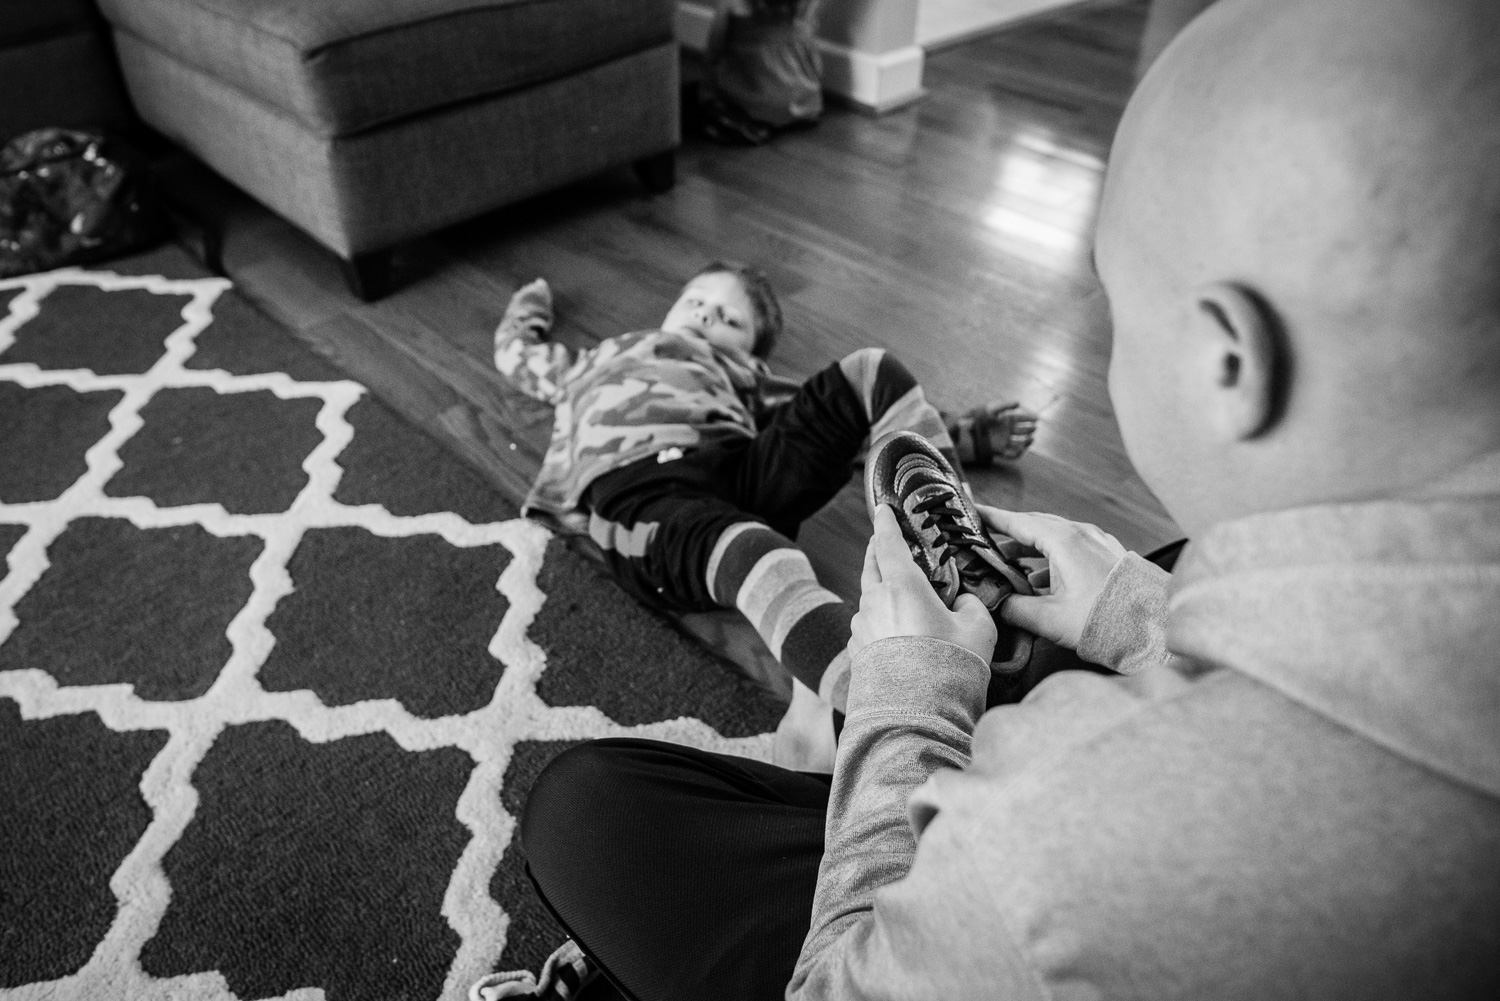 father son, family documentary and lifestyle photography